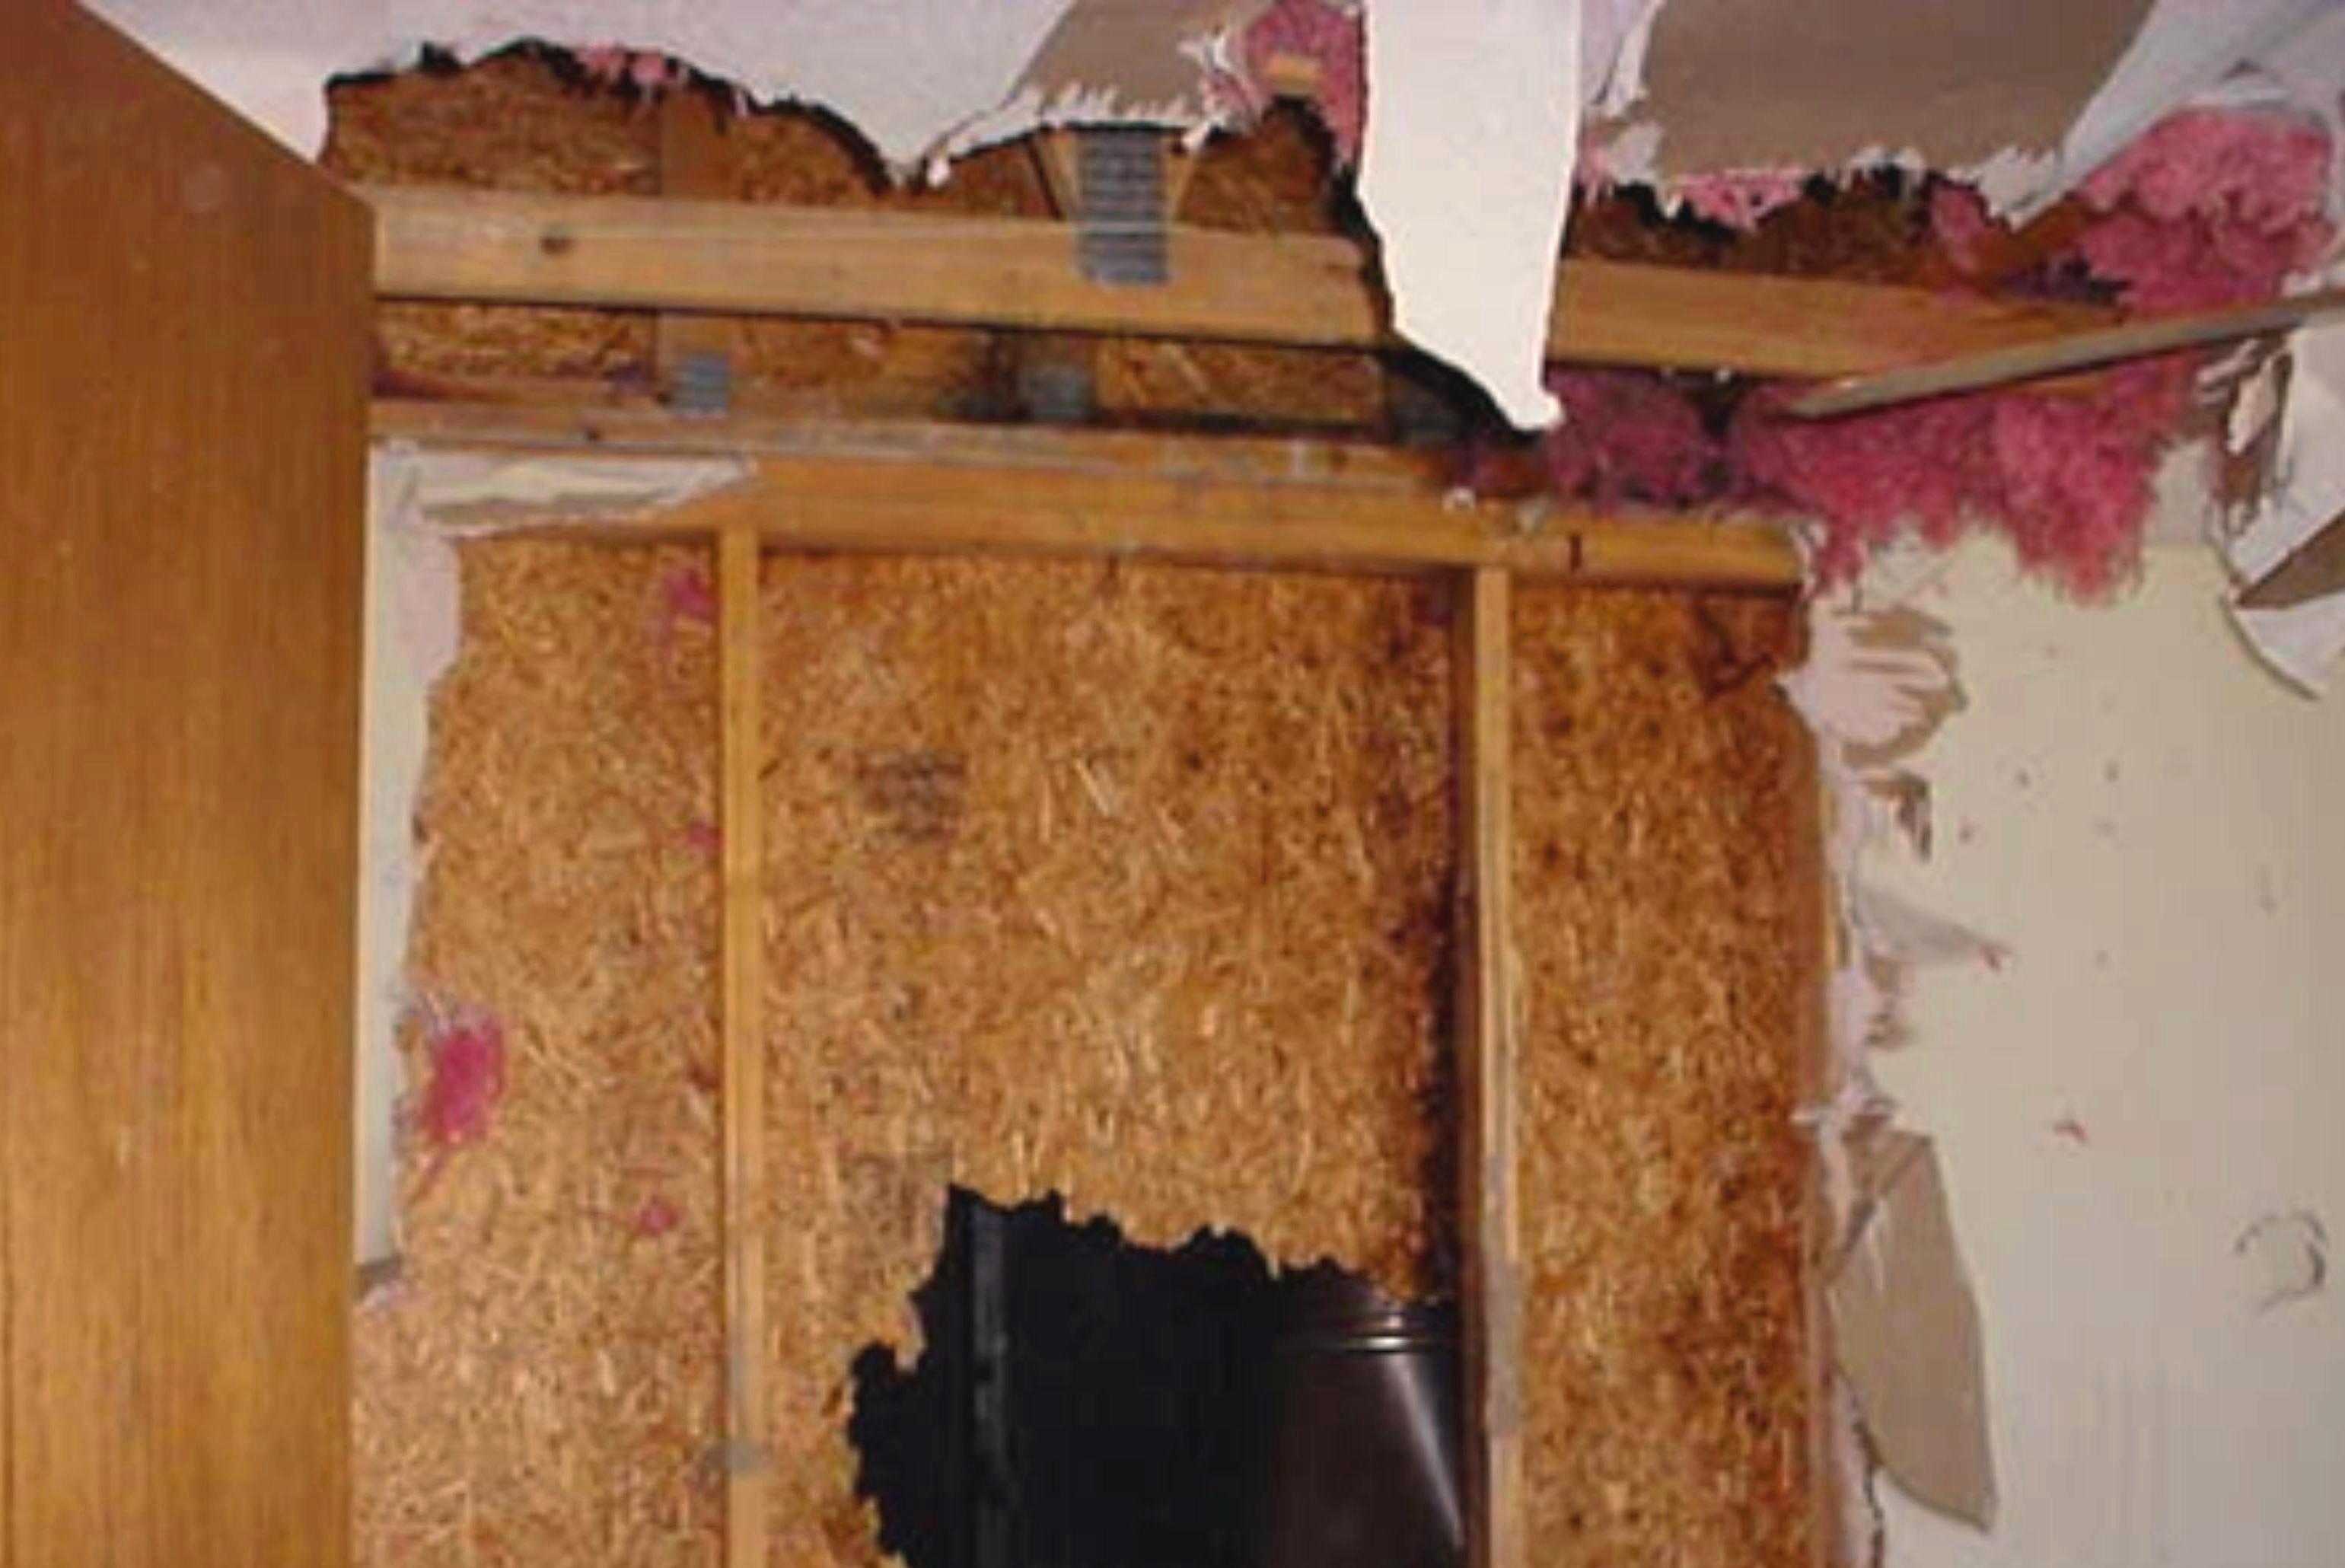 water damaged insulation | storm cleanup tips from ServiceMaster Wichita KS